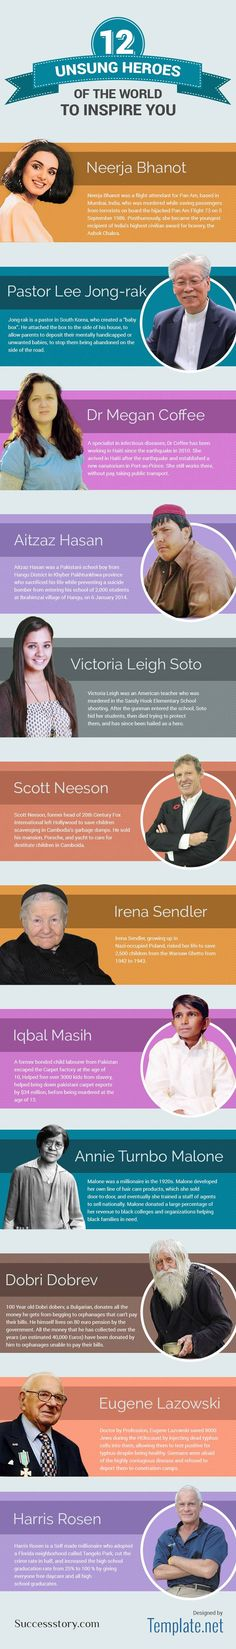 Unsung Heroes of the World to Inspire you #infographic #Heroes #History